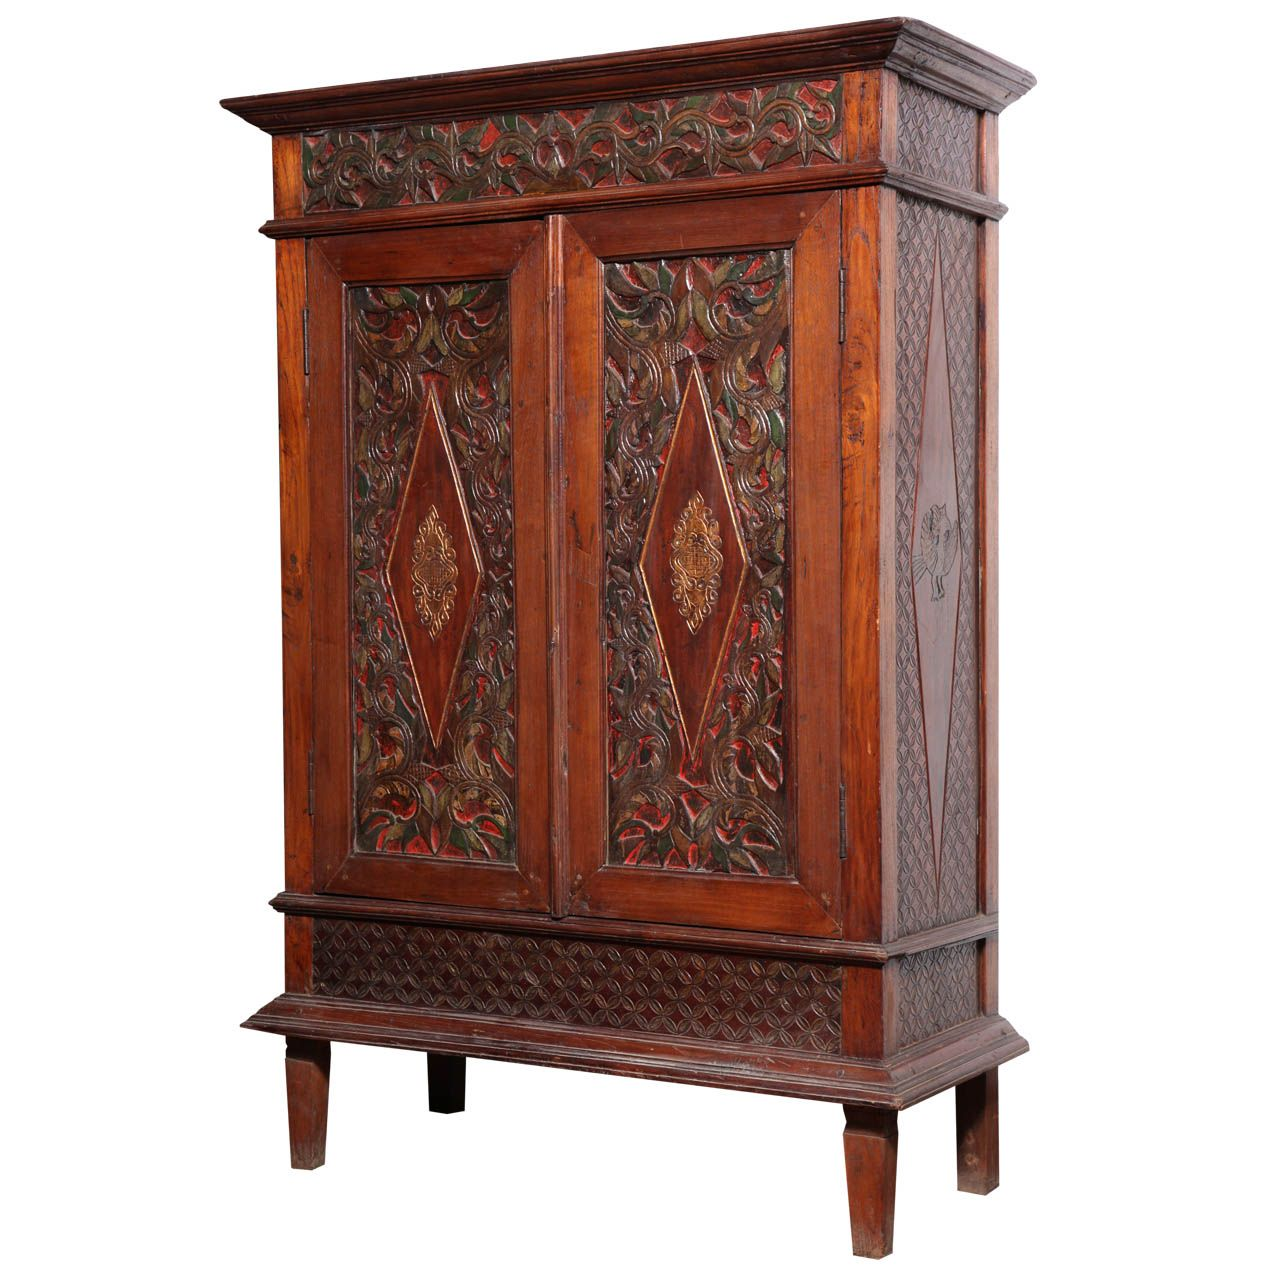 Inexpensive Antique Furniture: Antique Javanese Teakwood Cabinet With Detailed Carvings